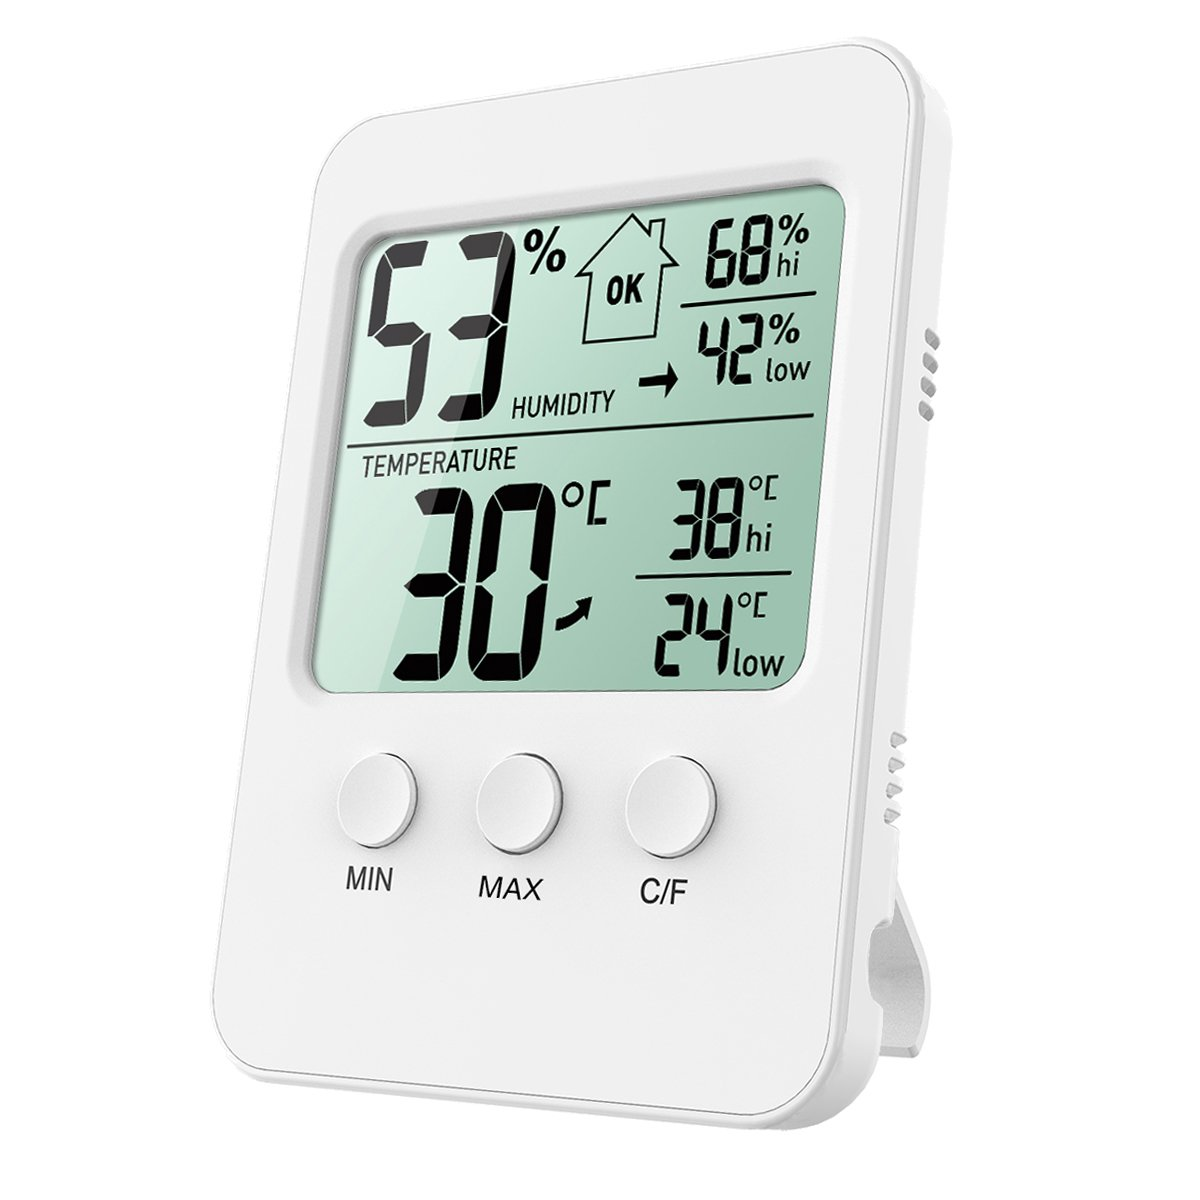 ORIA Digital Hygrometer Thermometer, Temperature Humidity Meter, Indoor Thermometer Humidity Monitor, LCD Screen with MIN/MAX Records, ℃/℉ Switch, for Warehouse, Home, Office, Greenhouse, Car ℃/℉ Switch 4335431373